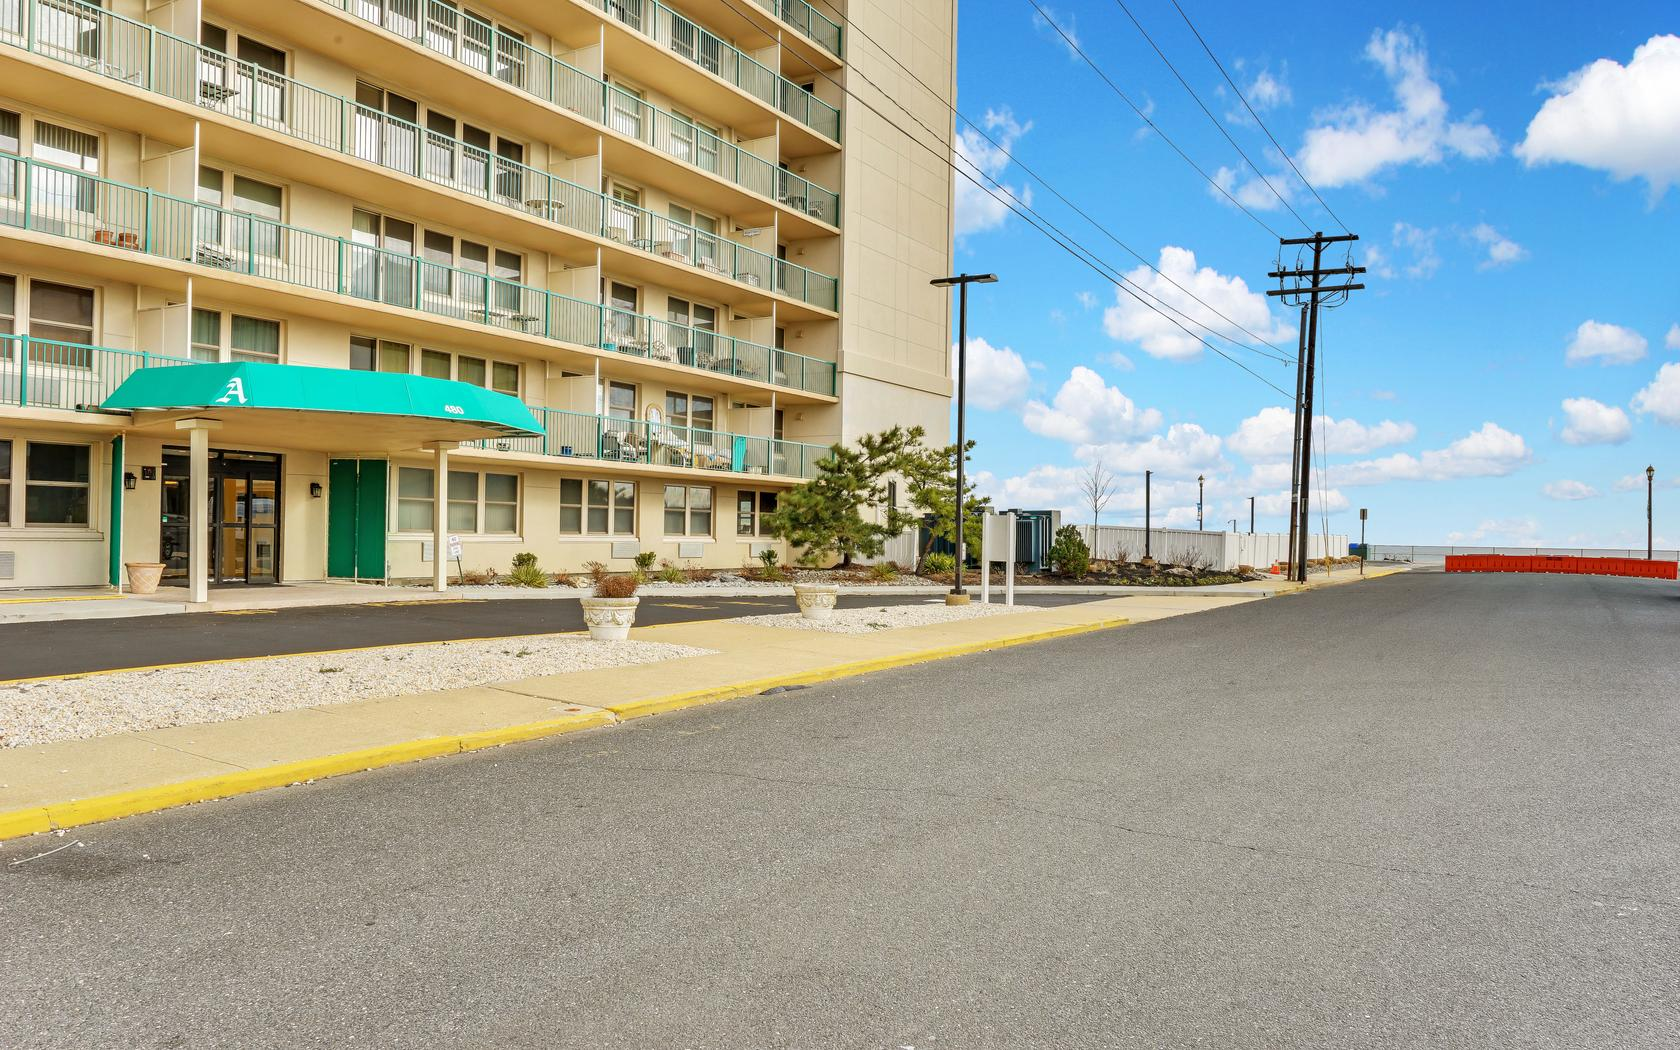 Condominium for Sale at Fantastic Ocean View Condo 480 Ocean Ave 4a Long Branch, 07740 United States